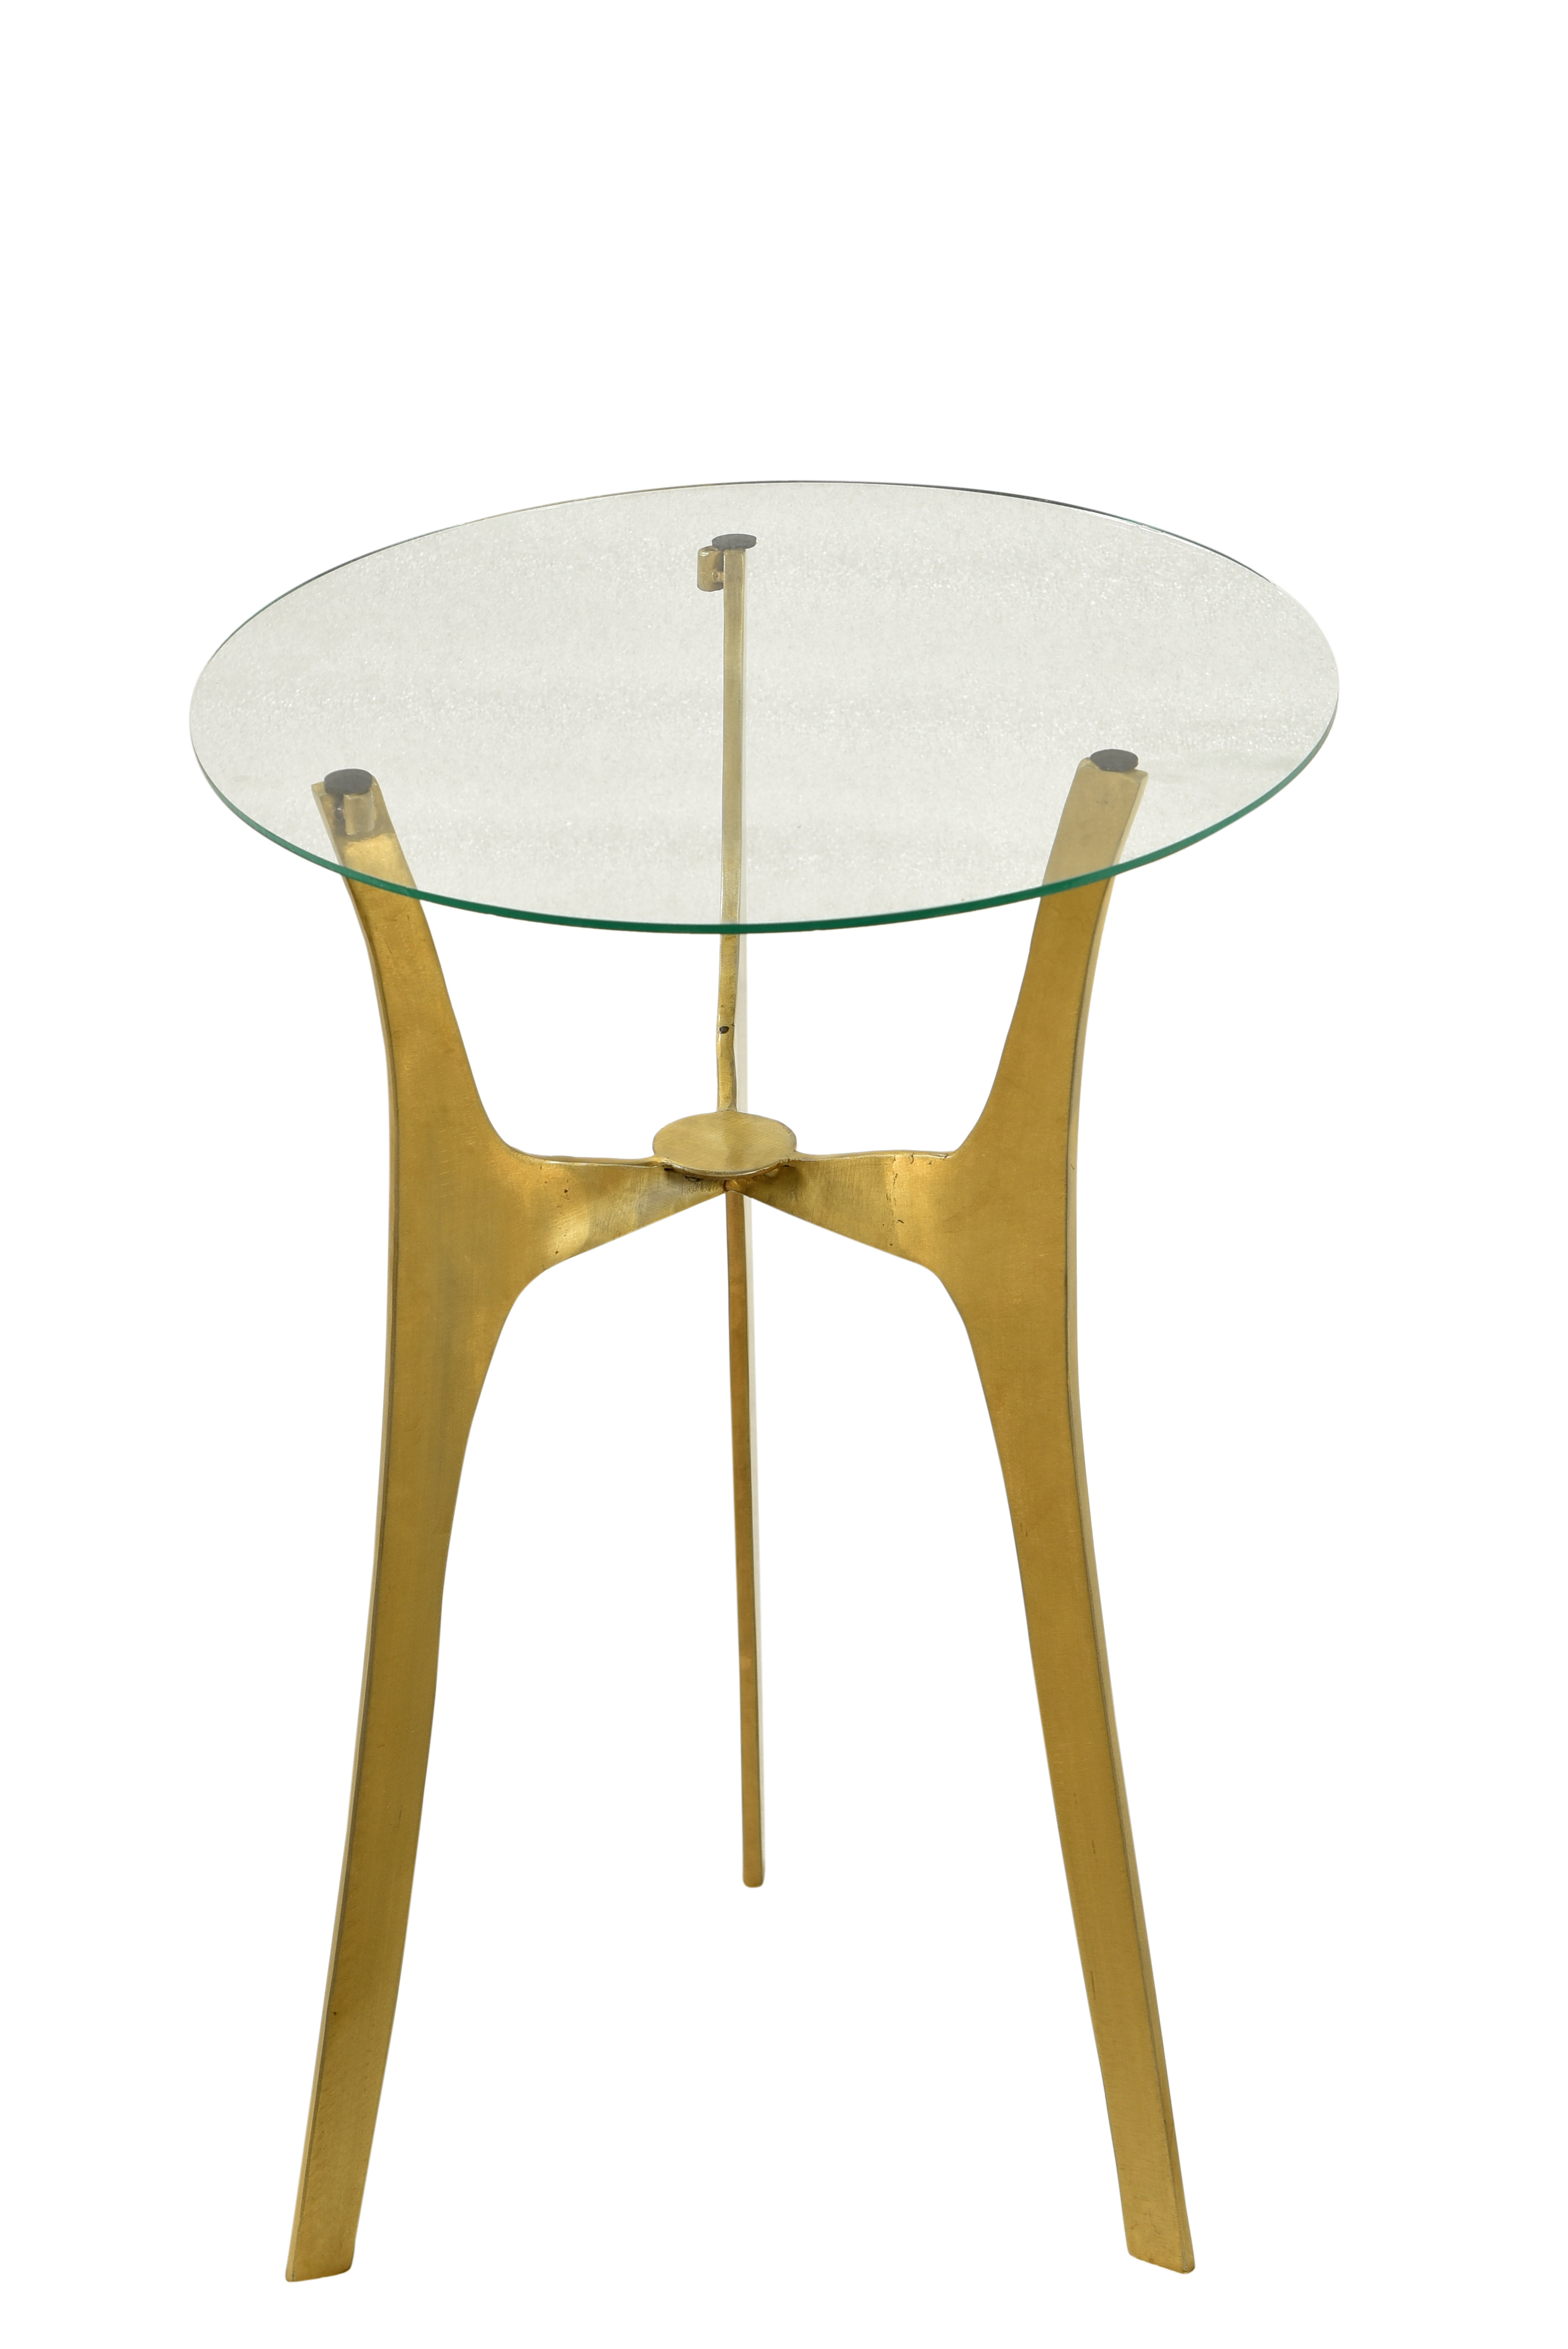 tipton tate asko end table round accent bunnings outdoor lounge settings small with folding sides tall narrow coffee cool sofa tables designer lamps living room west elm pedestal